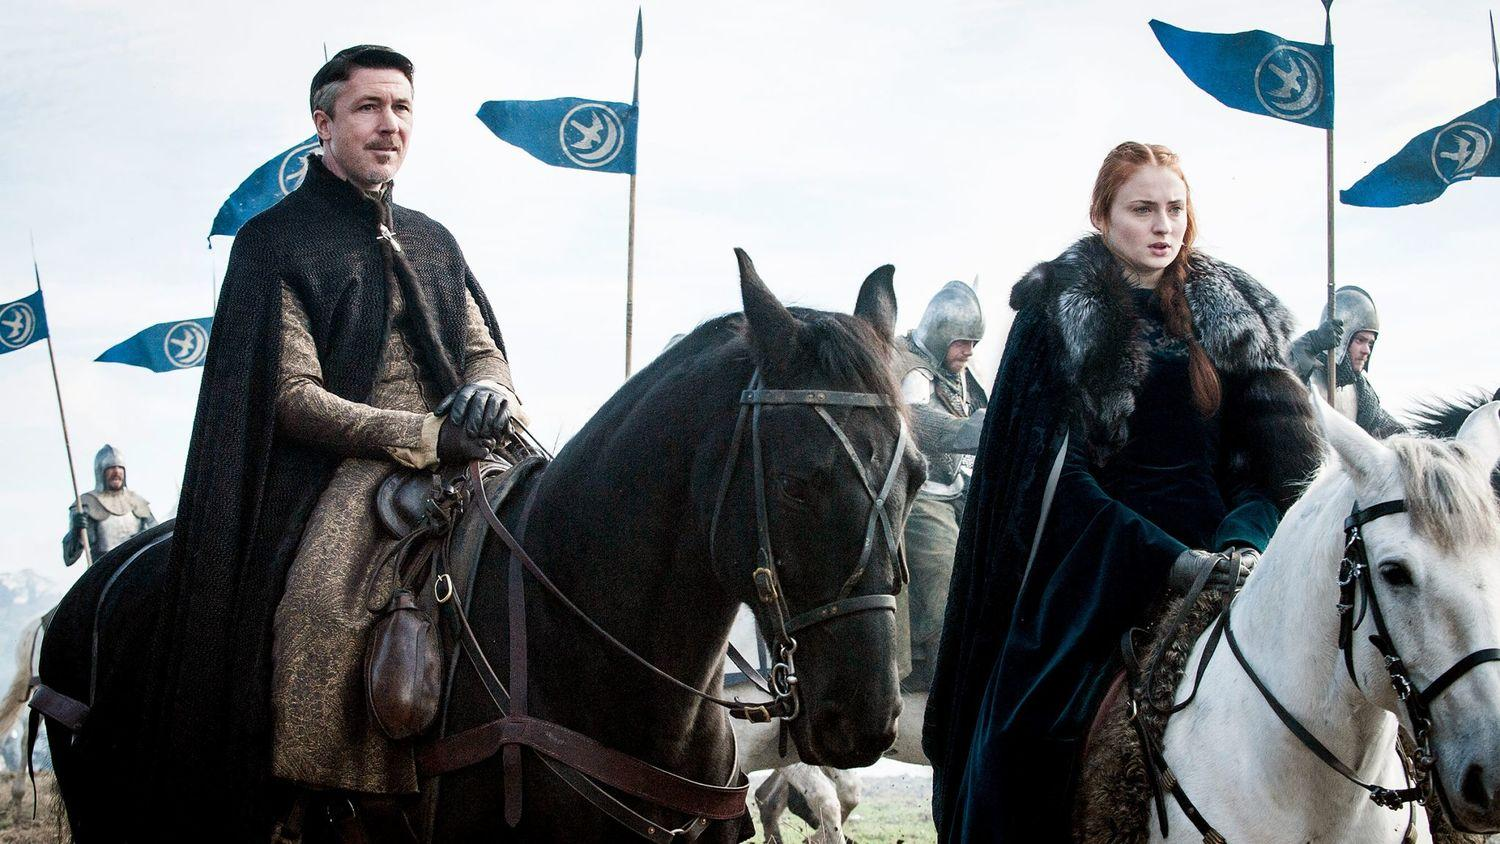 Game Of Thrones Season 6 Episode 9 Battle Of The Bastards Recap Watchers On The Wall A Game Of Thrones Community For Breaking News Casting And Commentary